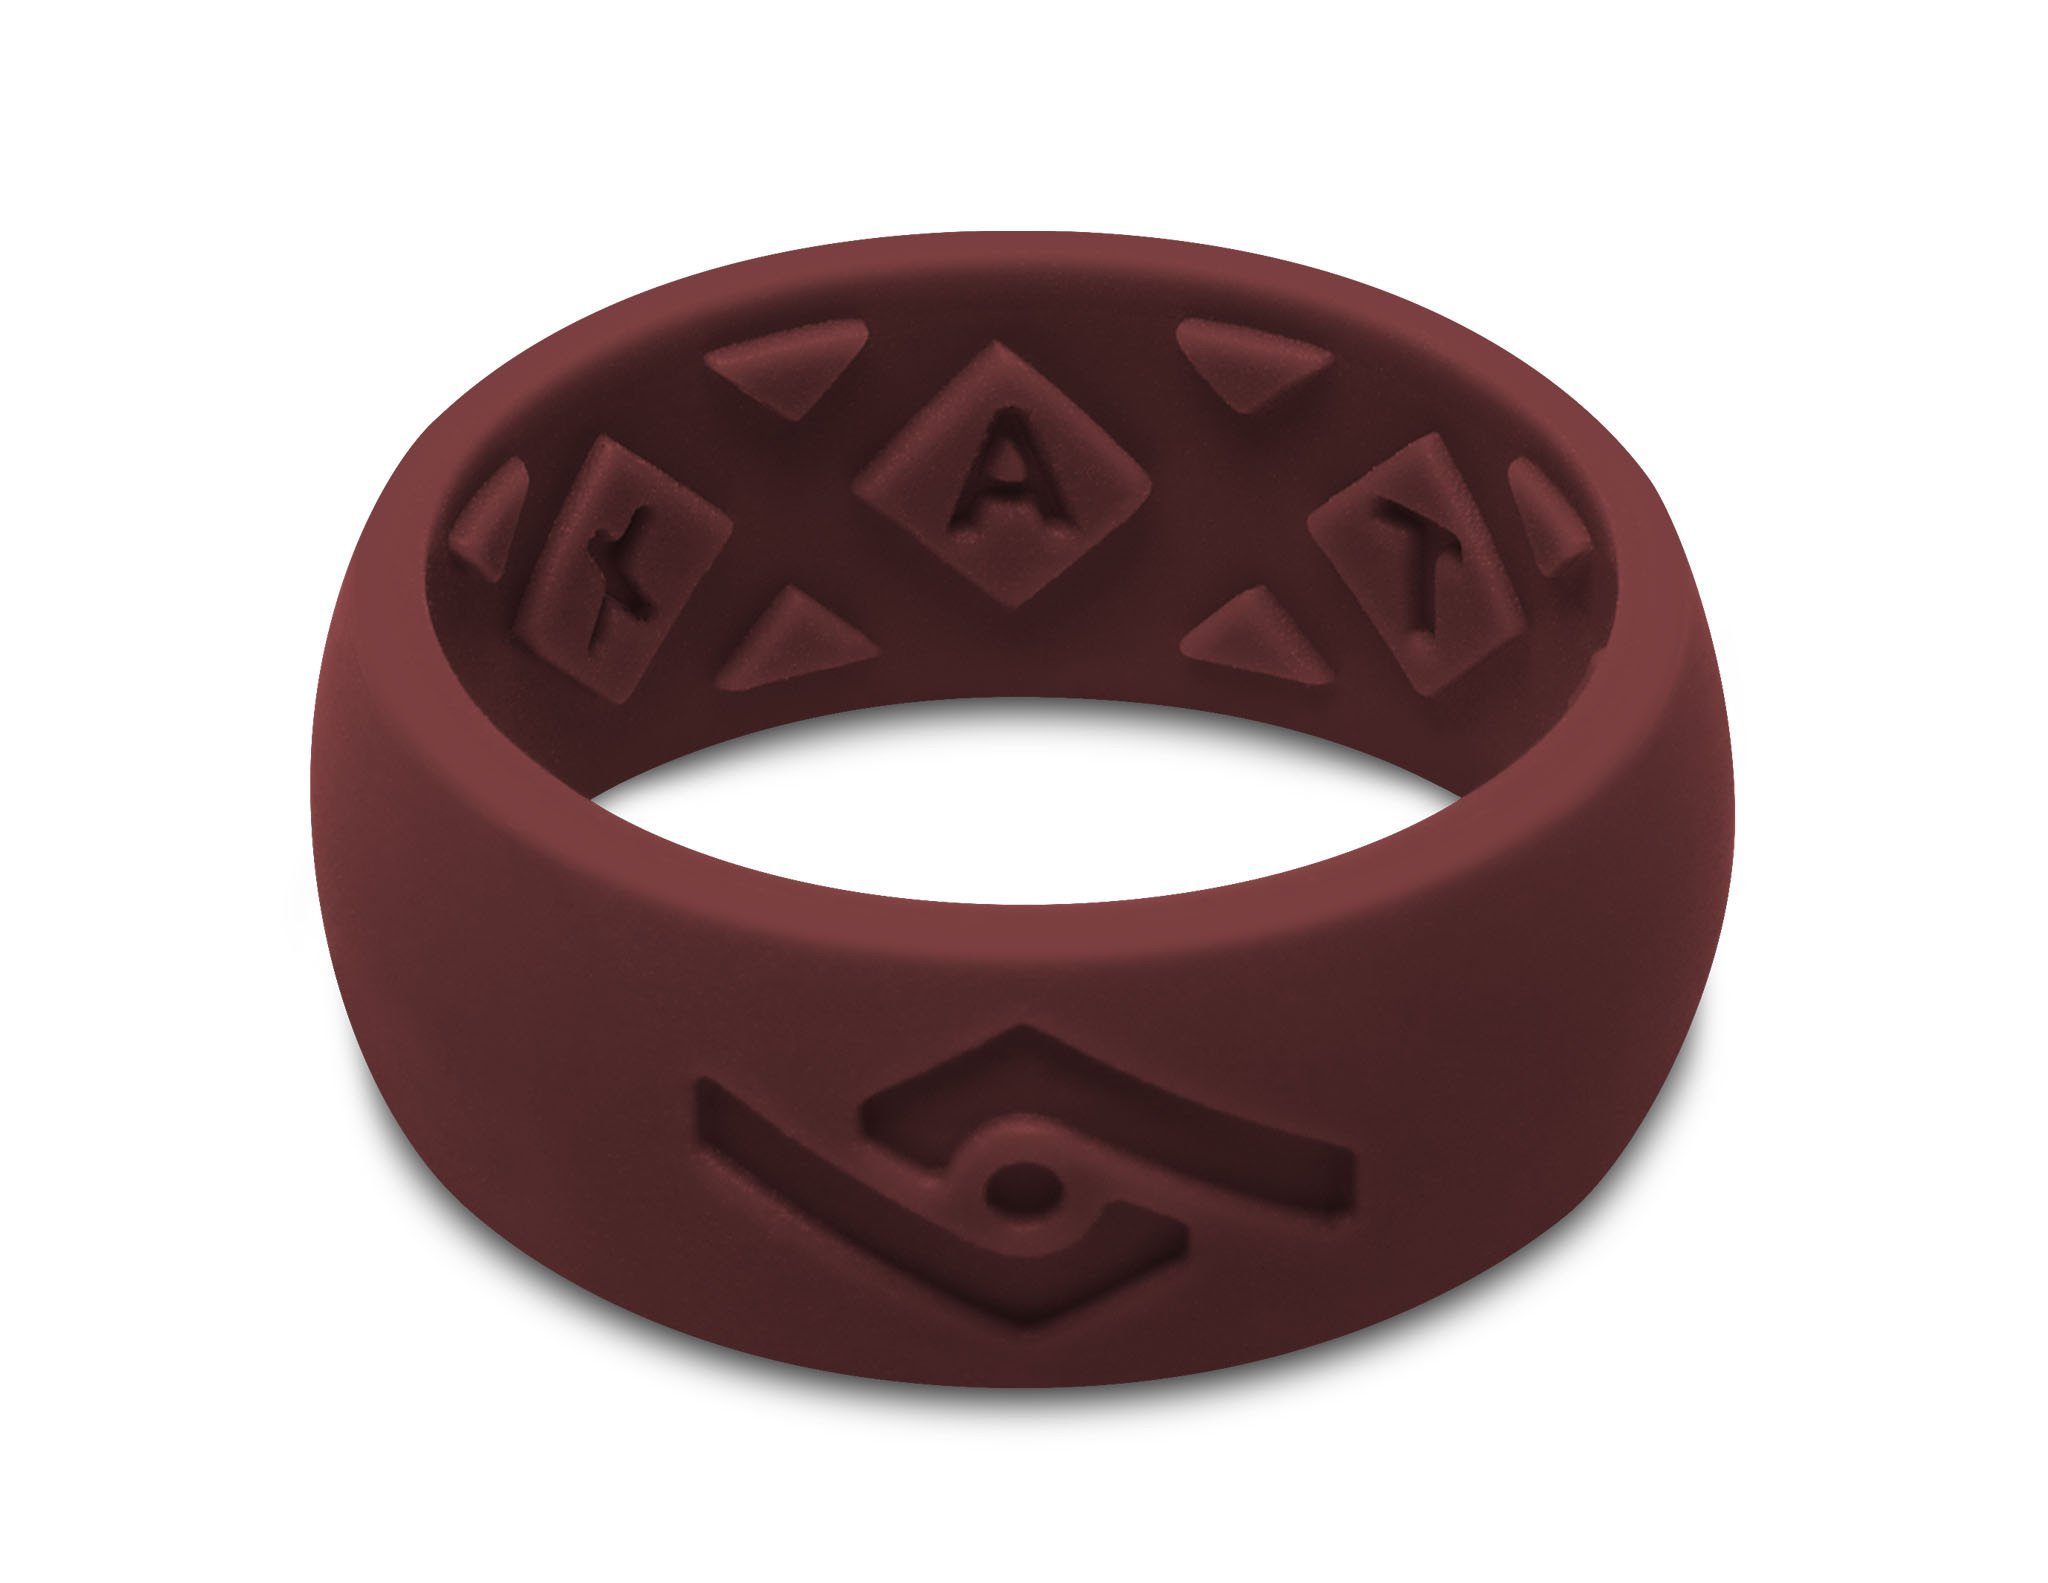 Fixate Designs Men's FX8 X-Vent Silicone Ring in Multiple Colors and Sizes